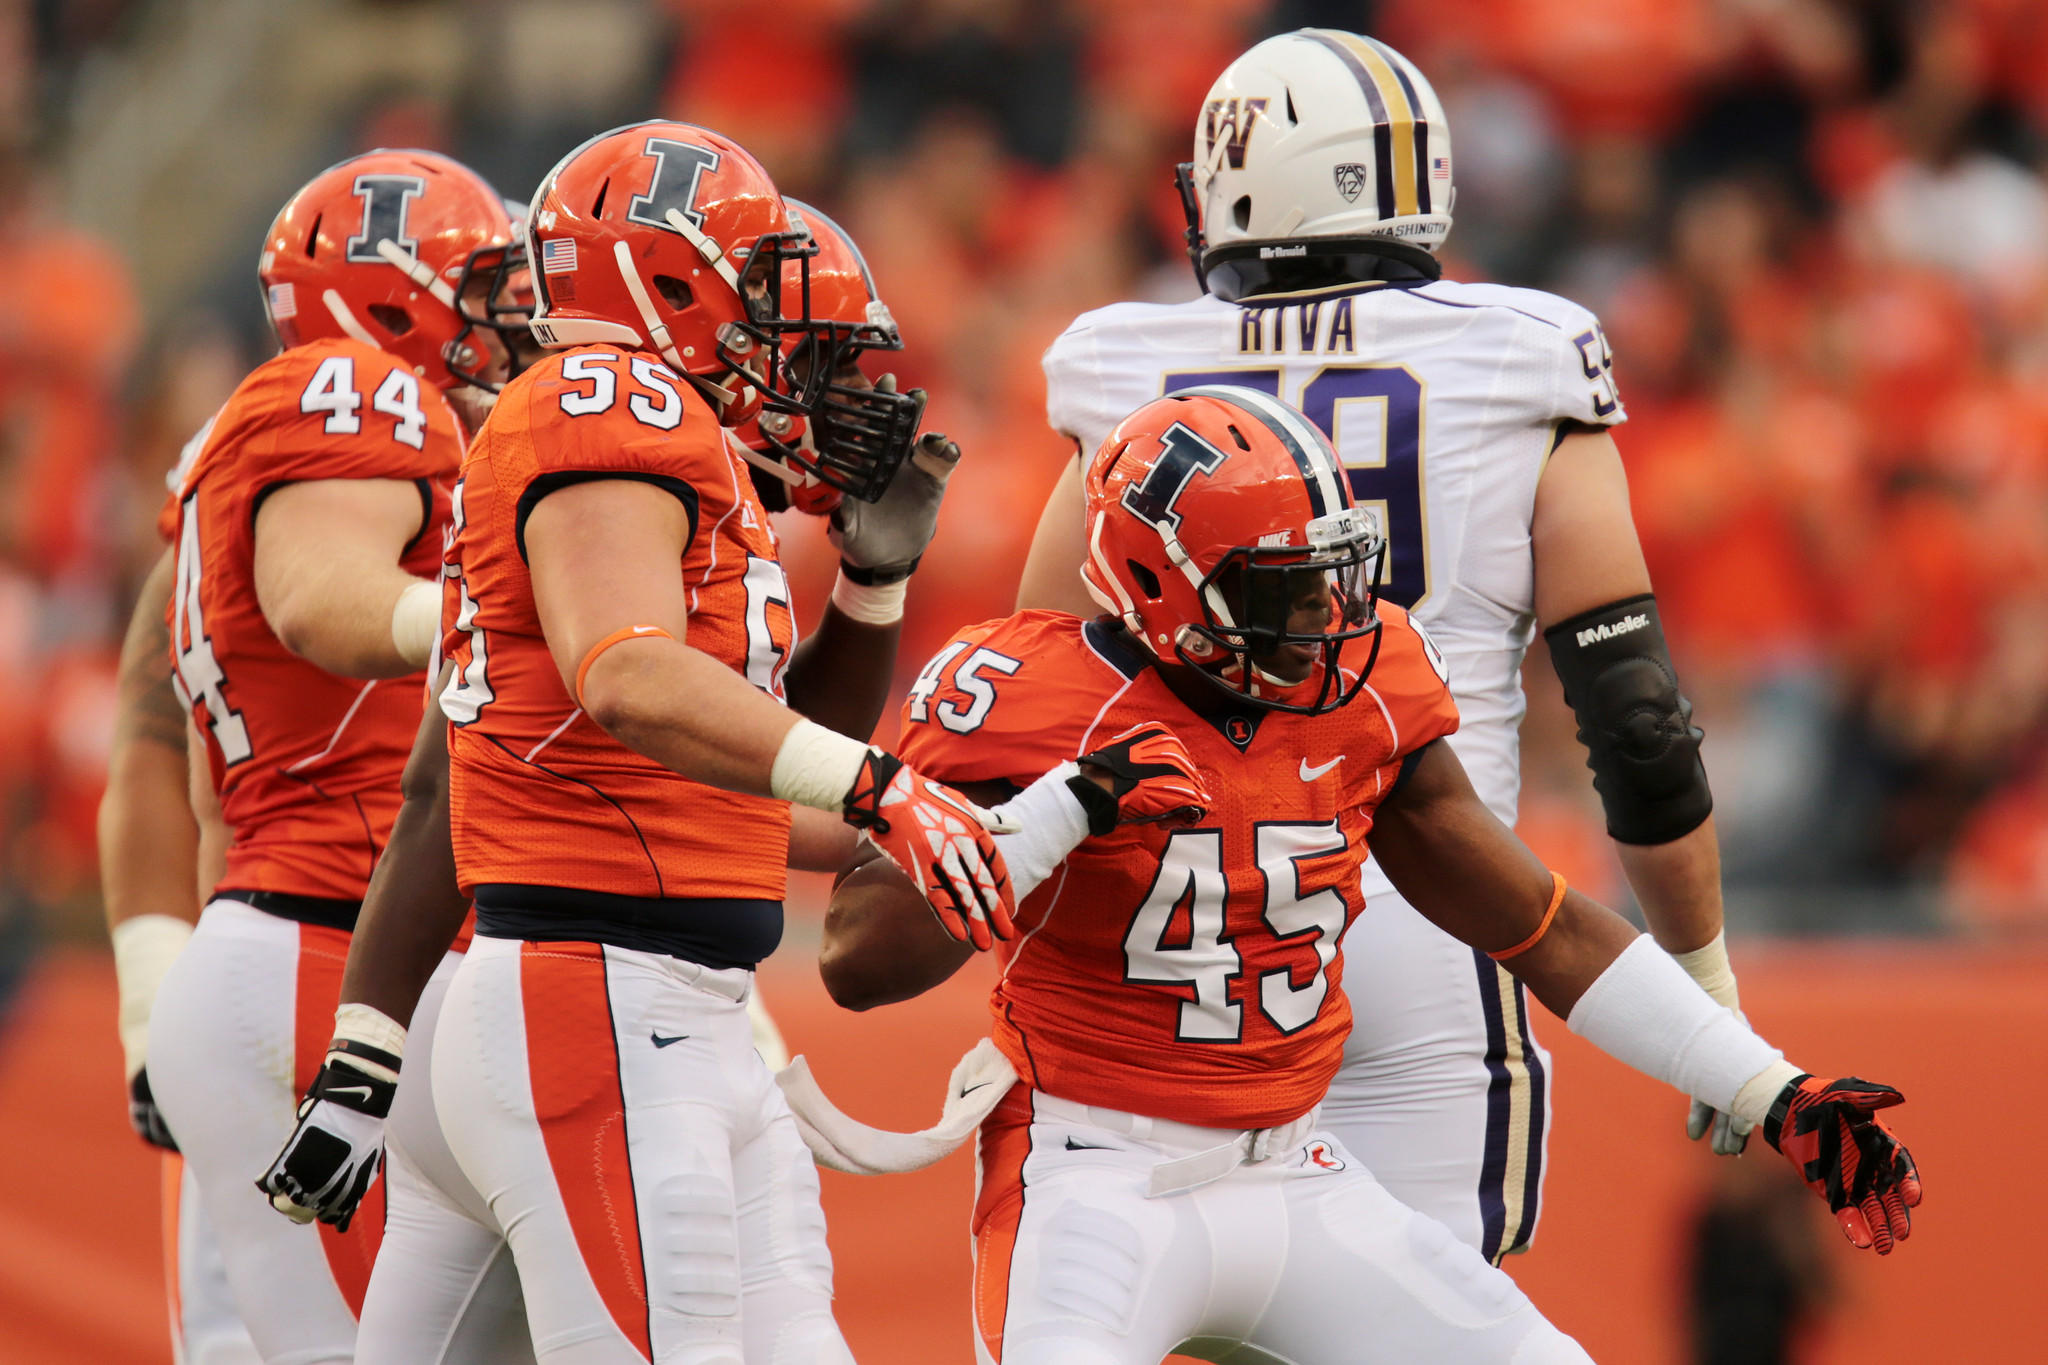 Illinois linebacker Jonathan Brown (45) celebrates a sack in the first half against Washington at Soldier Field.